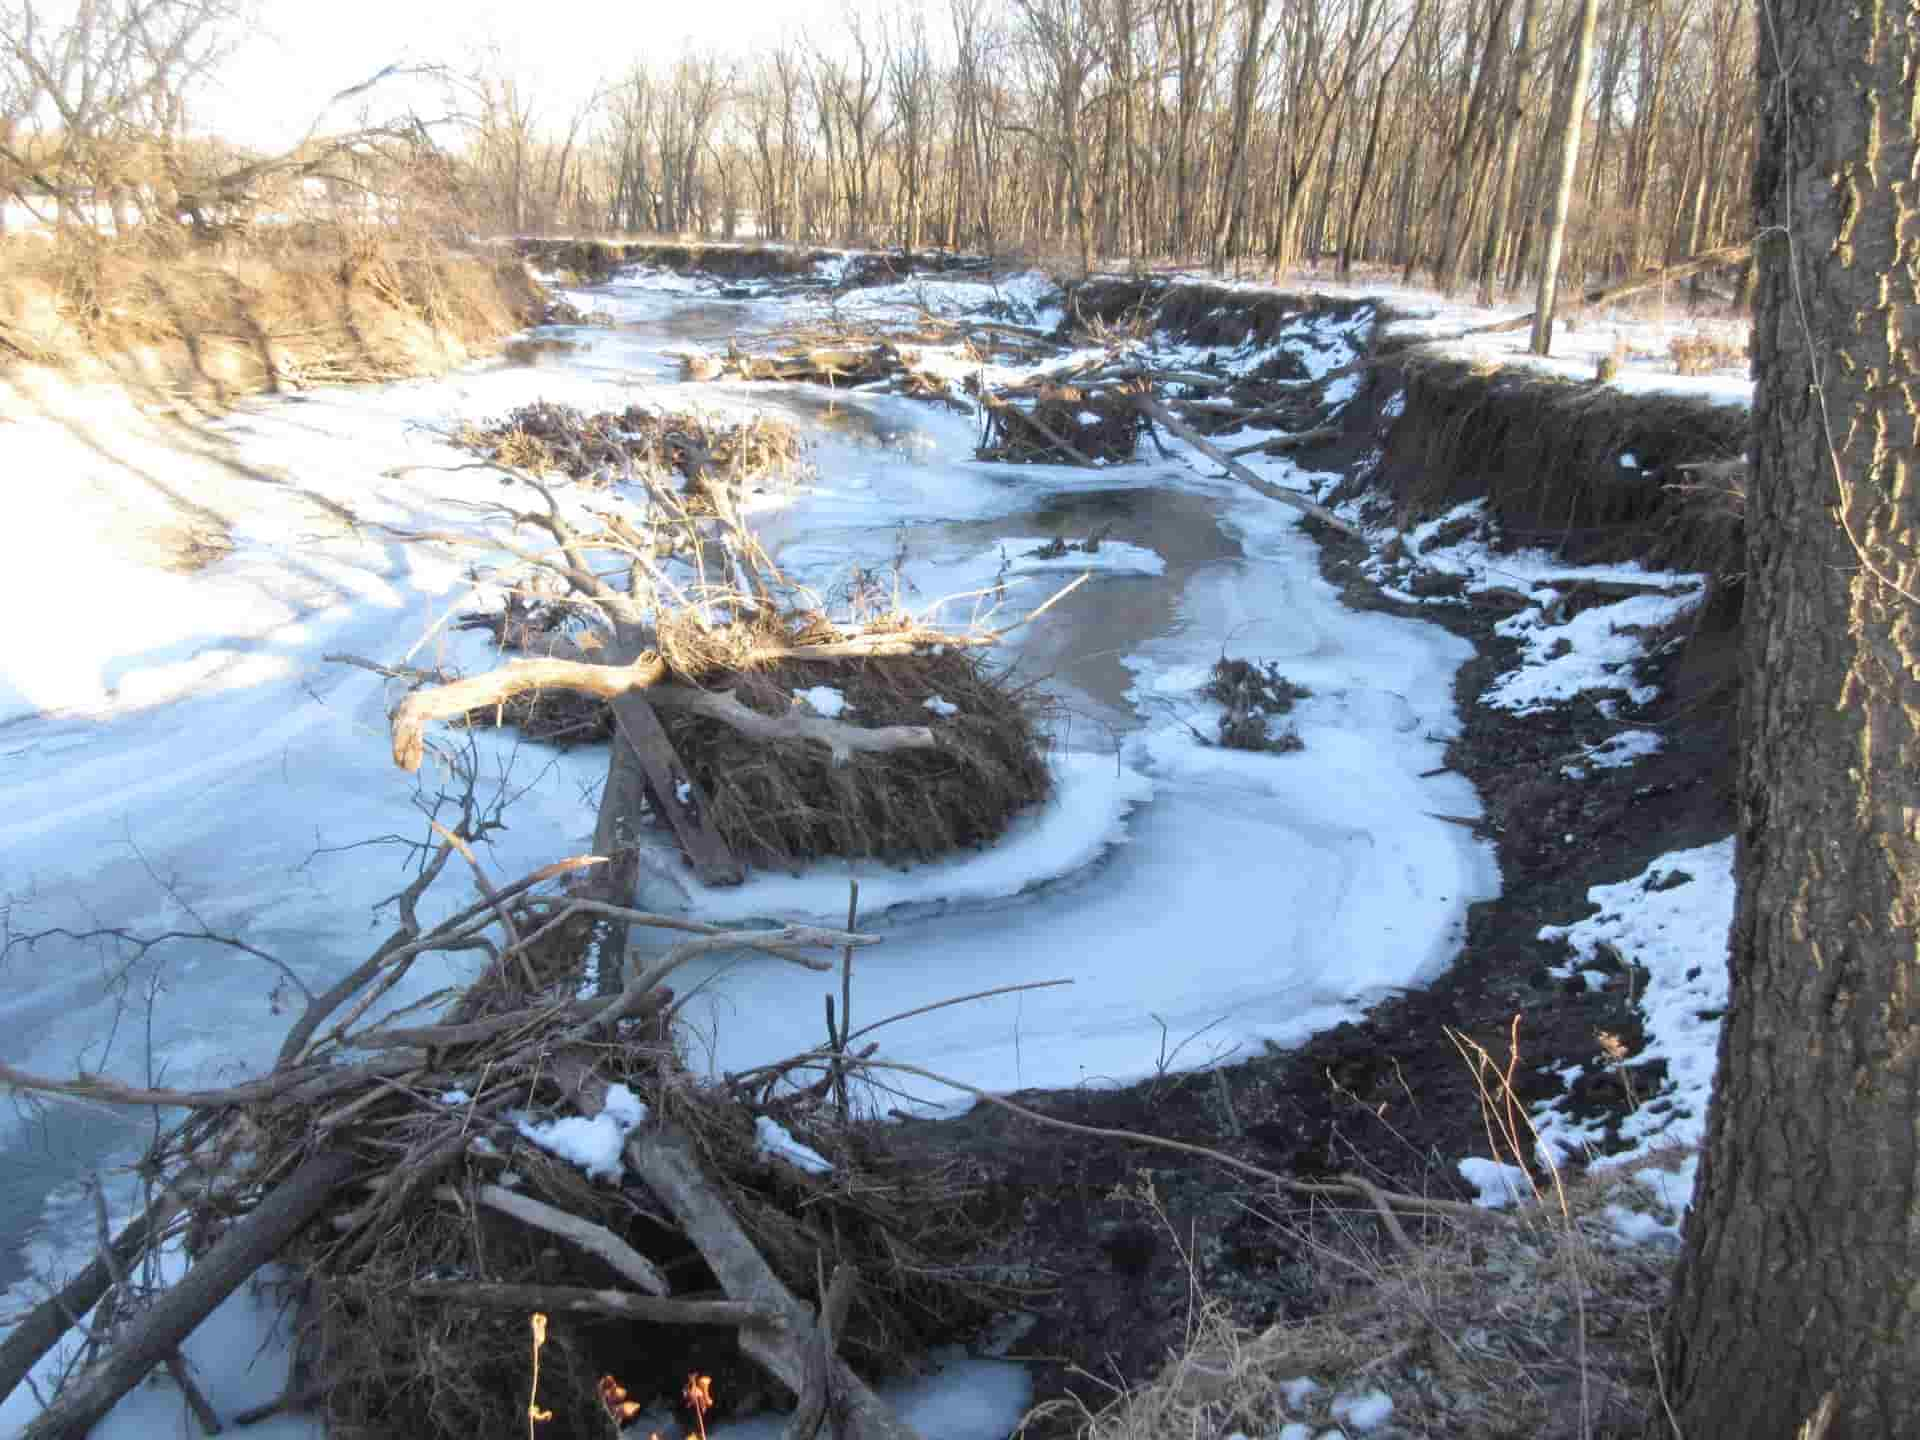 """Before"" picture: Snow over an impacted stream with broken trees"